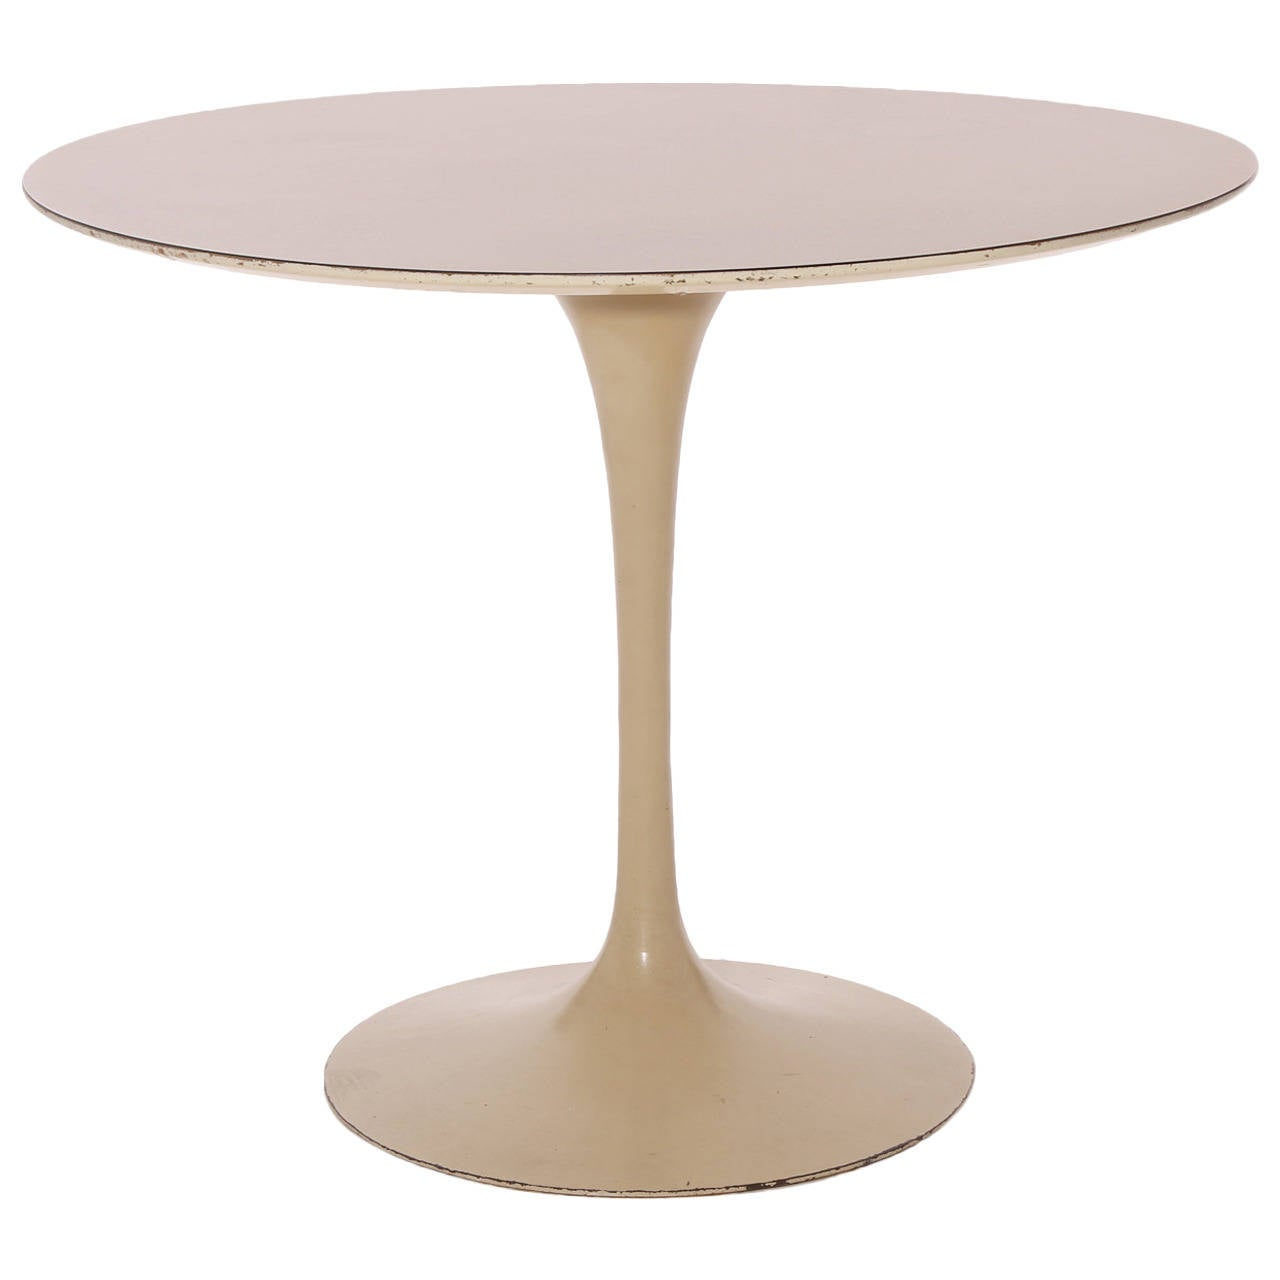 Early iron base tulip dining table by eero saarinen at 1stdibs for Tulip dining table